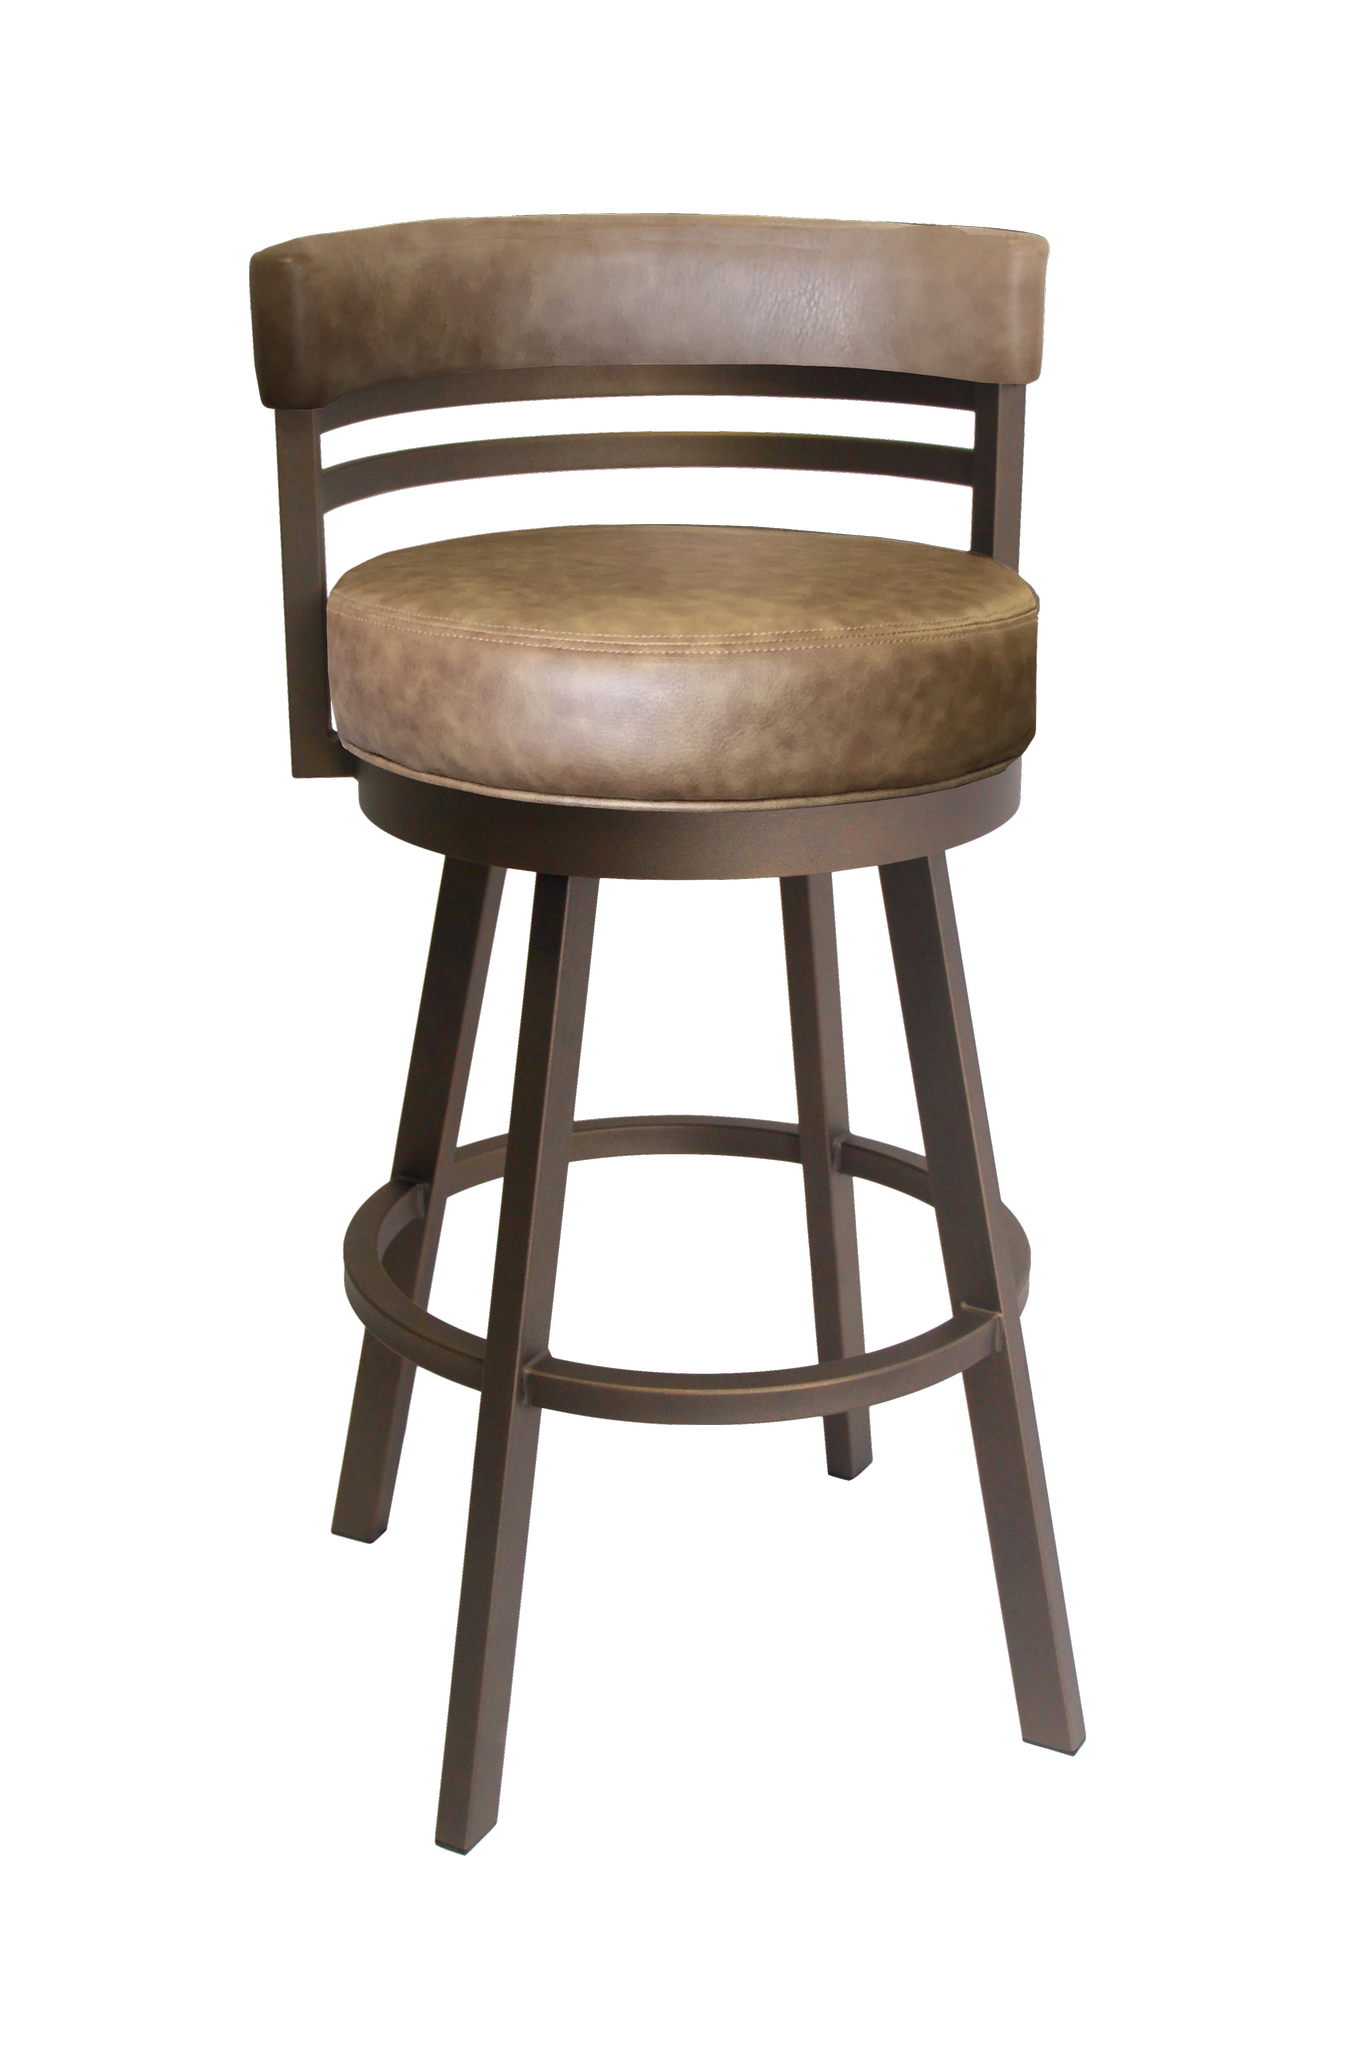 Remarkable Tempo Callee Ambridge 34 Swivel Bar Stool Unemploymentrelief Wooden Chair Designs For Living Room Unemploymentrelieforg